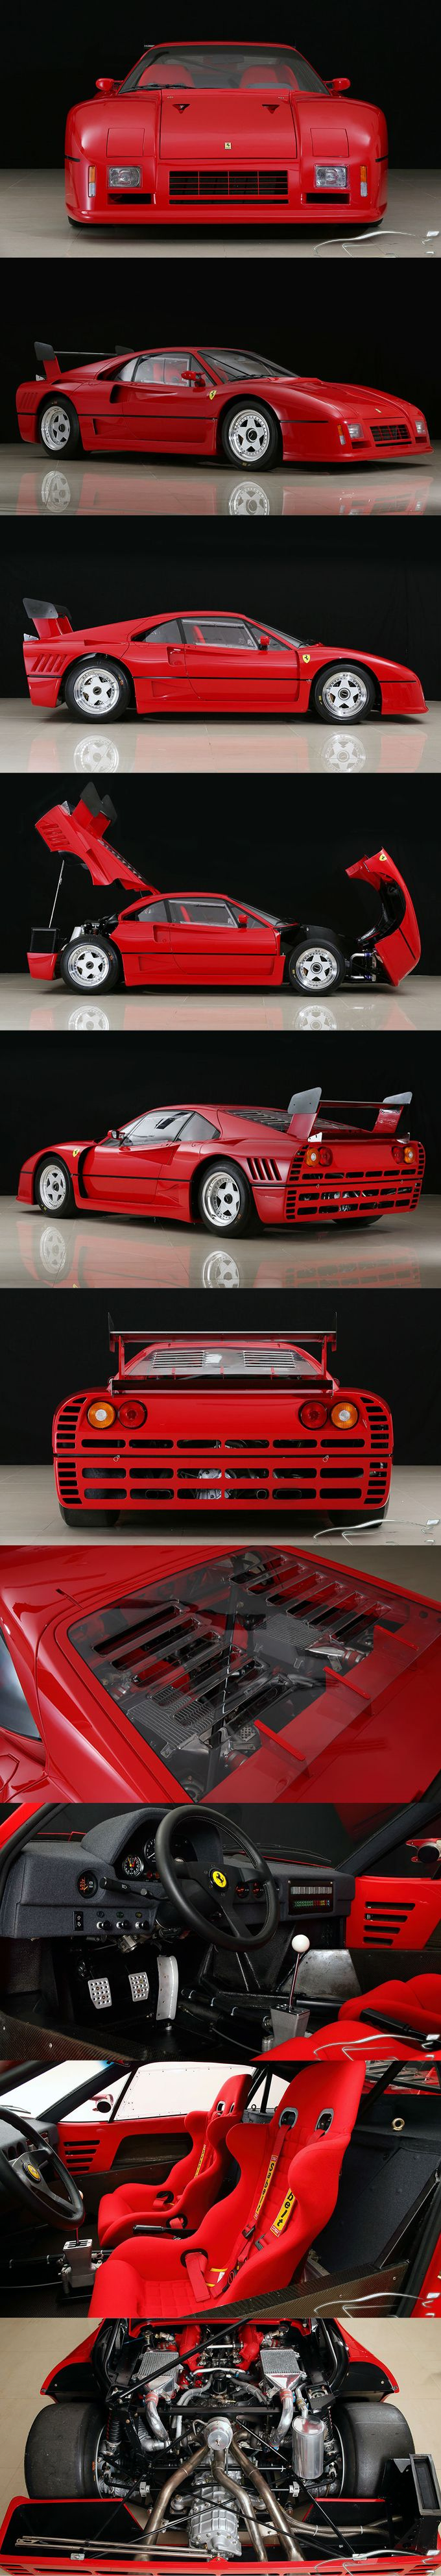 1986 Ferrari 288 GTO Evoluzione / 5pcs / 650hp / competition / Italy / red